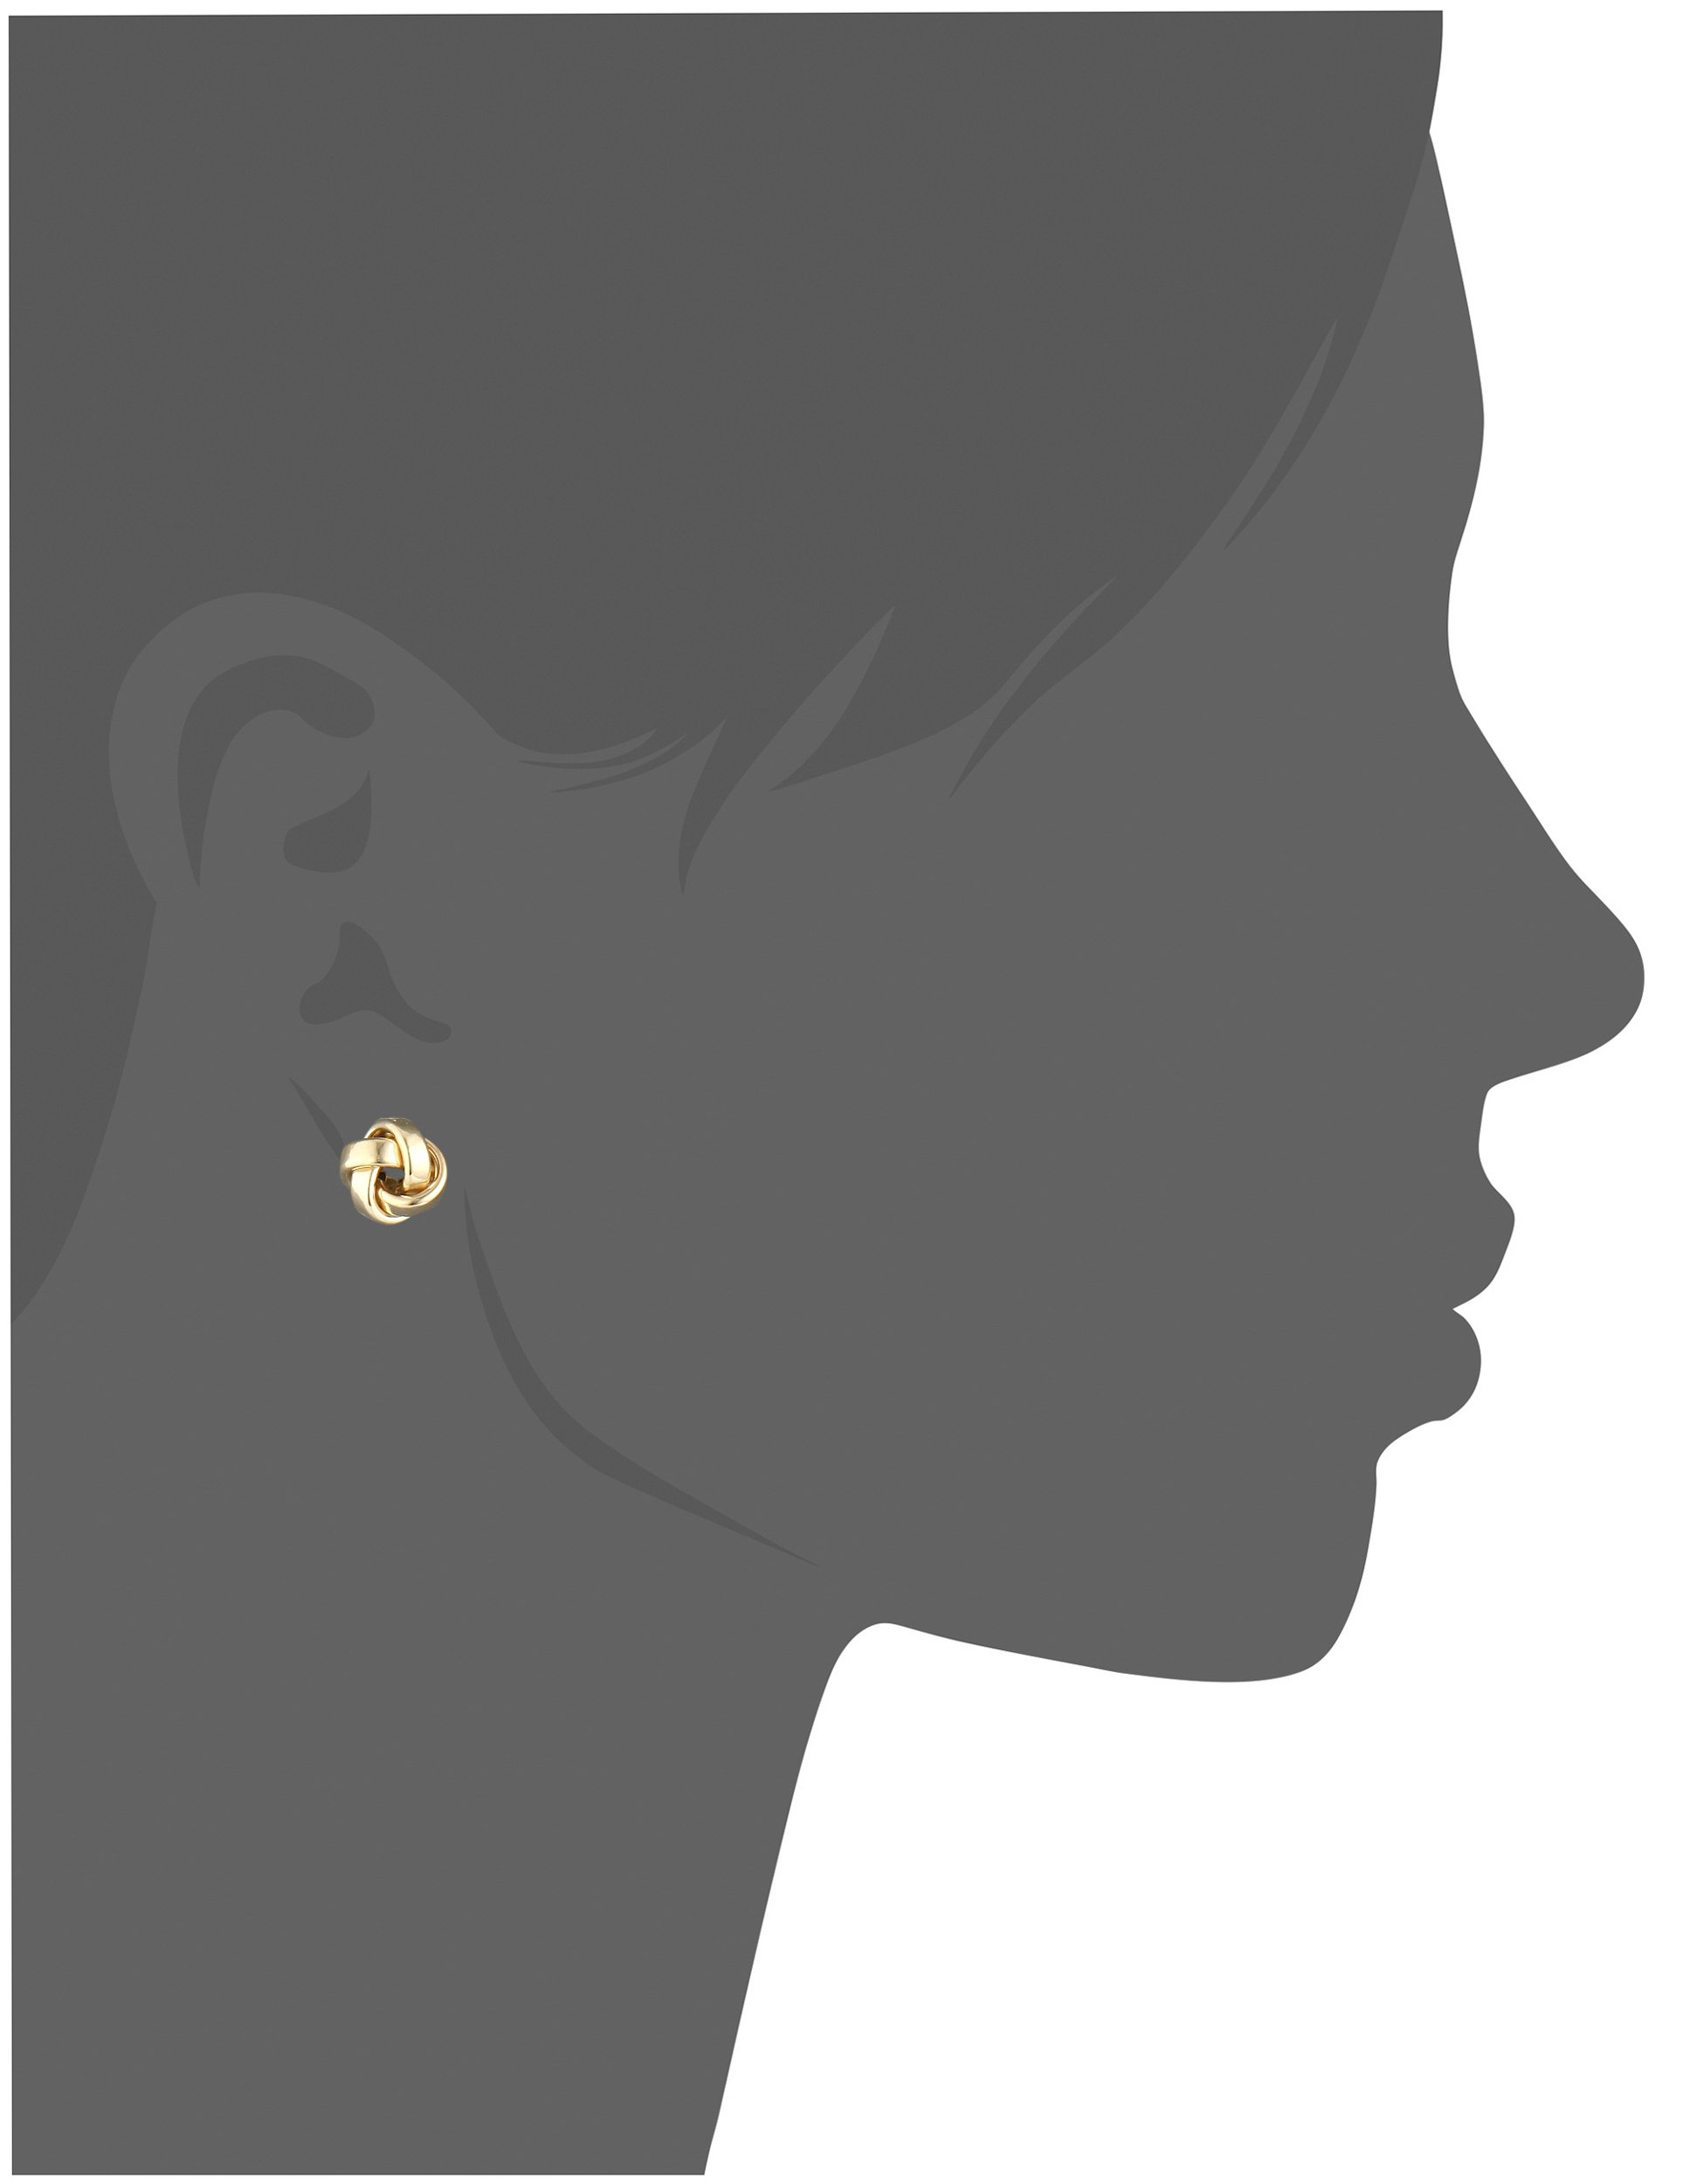 14k Yellow Gold Italian High Polished Love Knot Stud Earrings by Amazon Collection (Image #2)